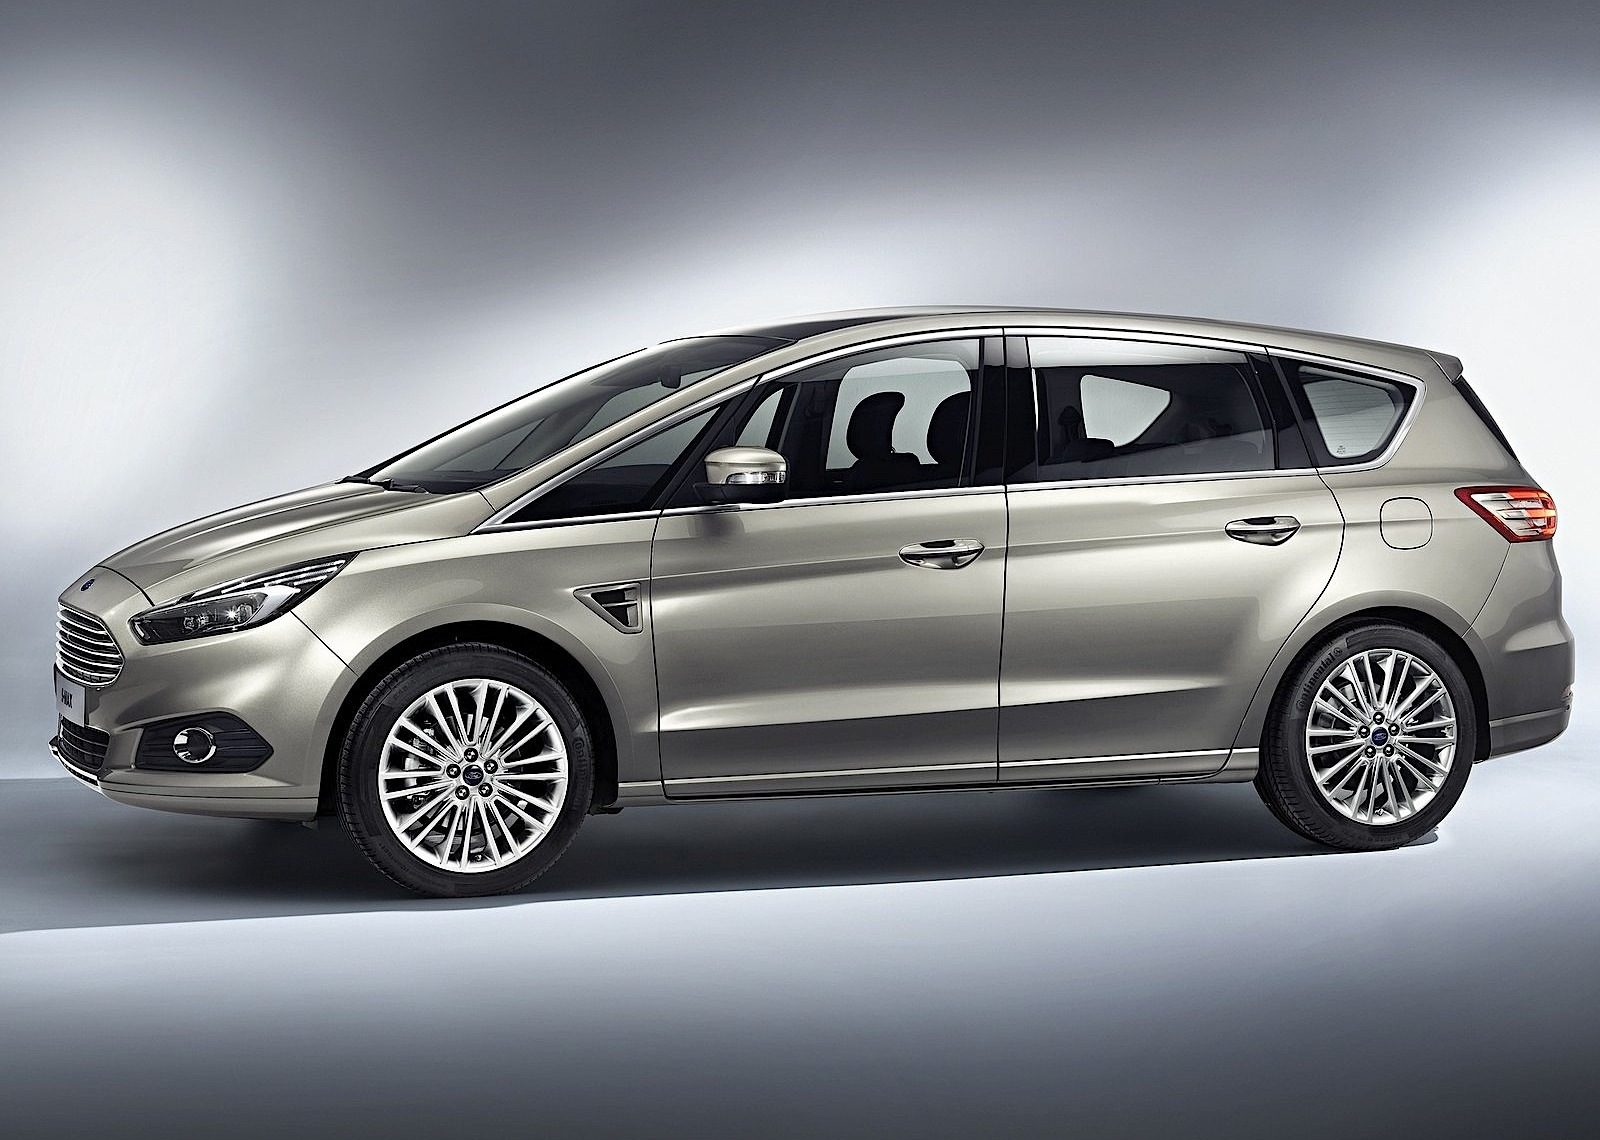 2019 Ford S MAX photo - 3